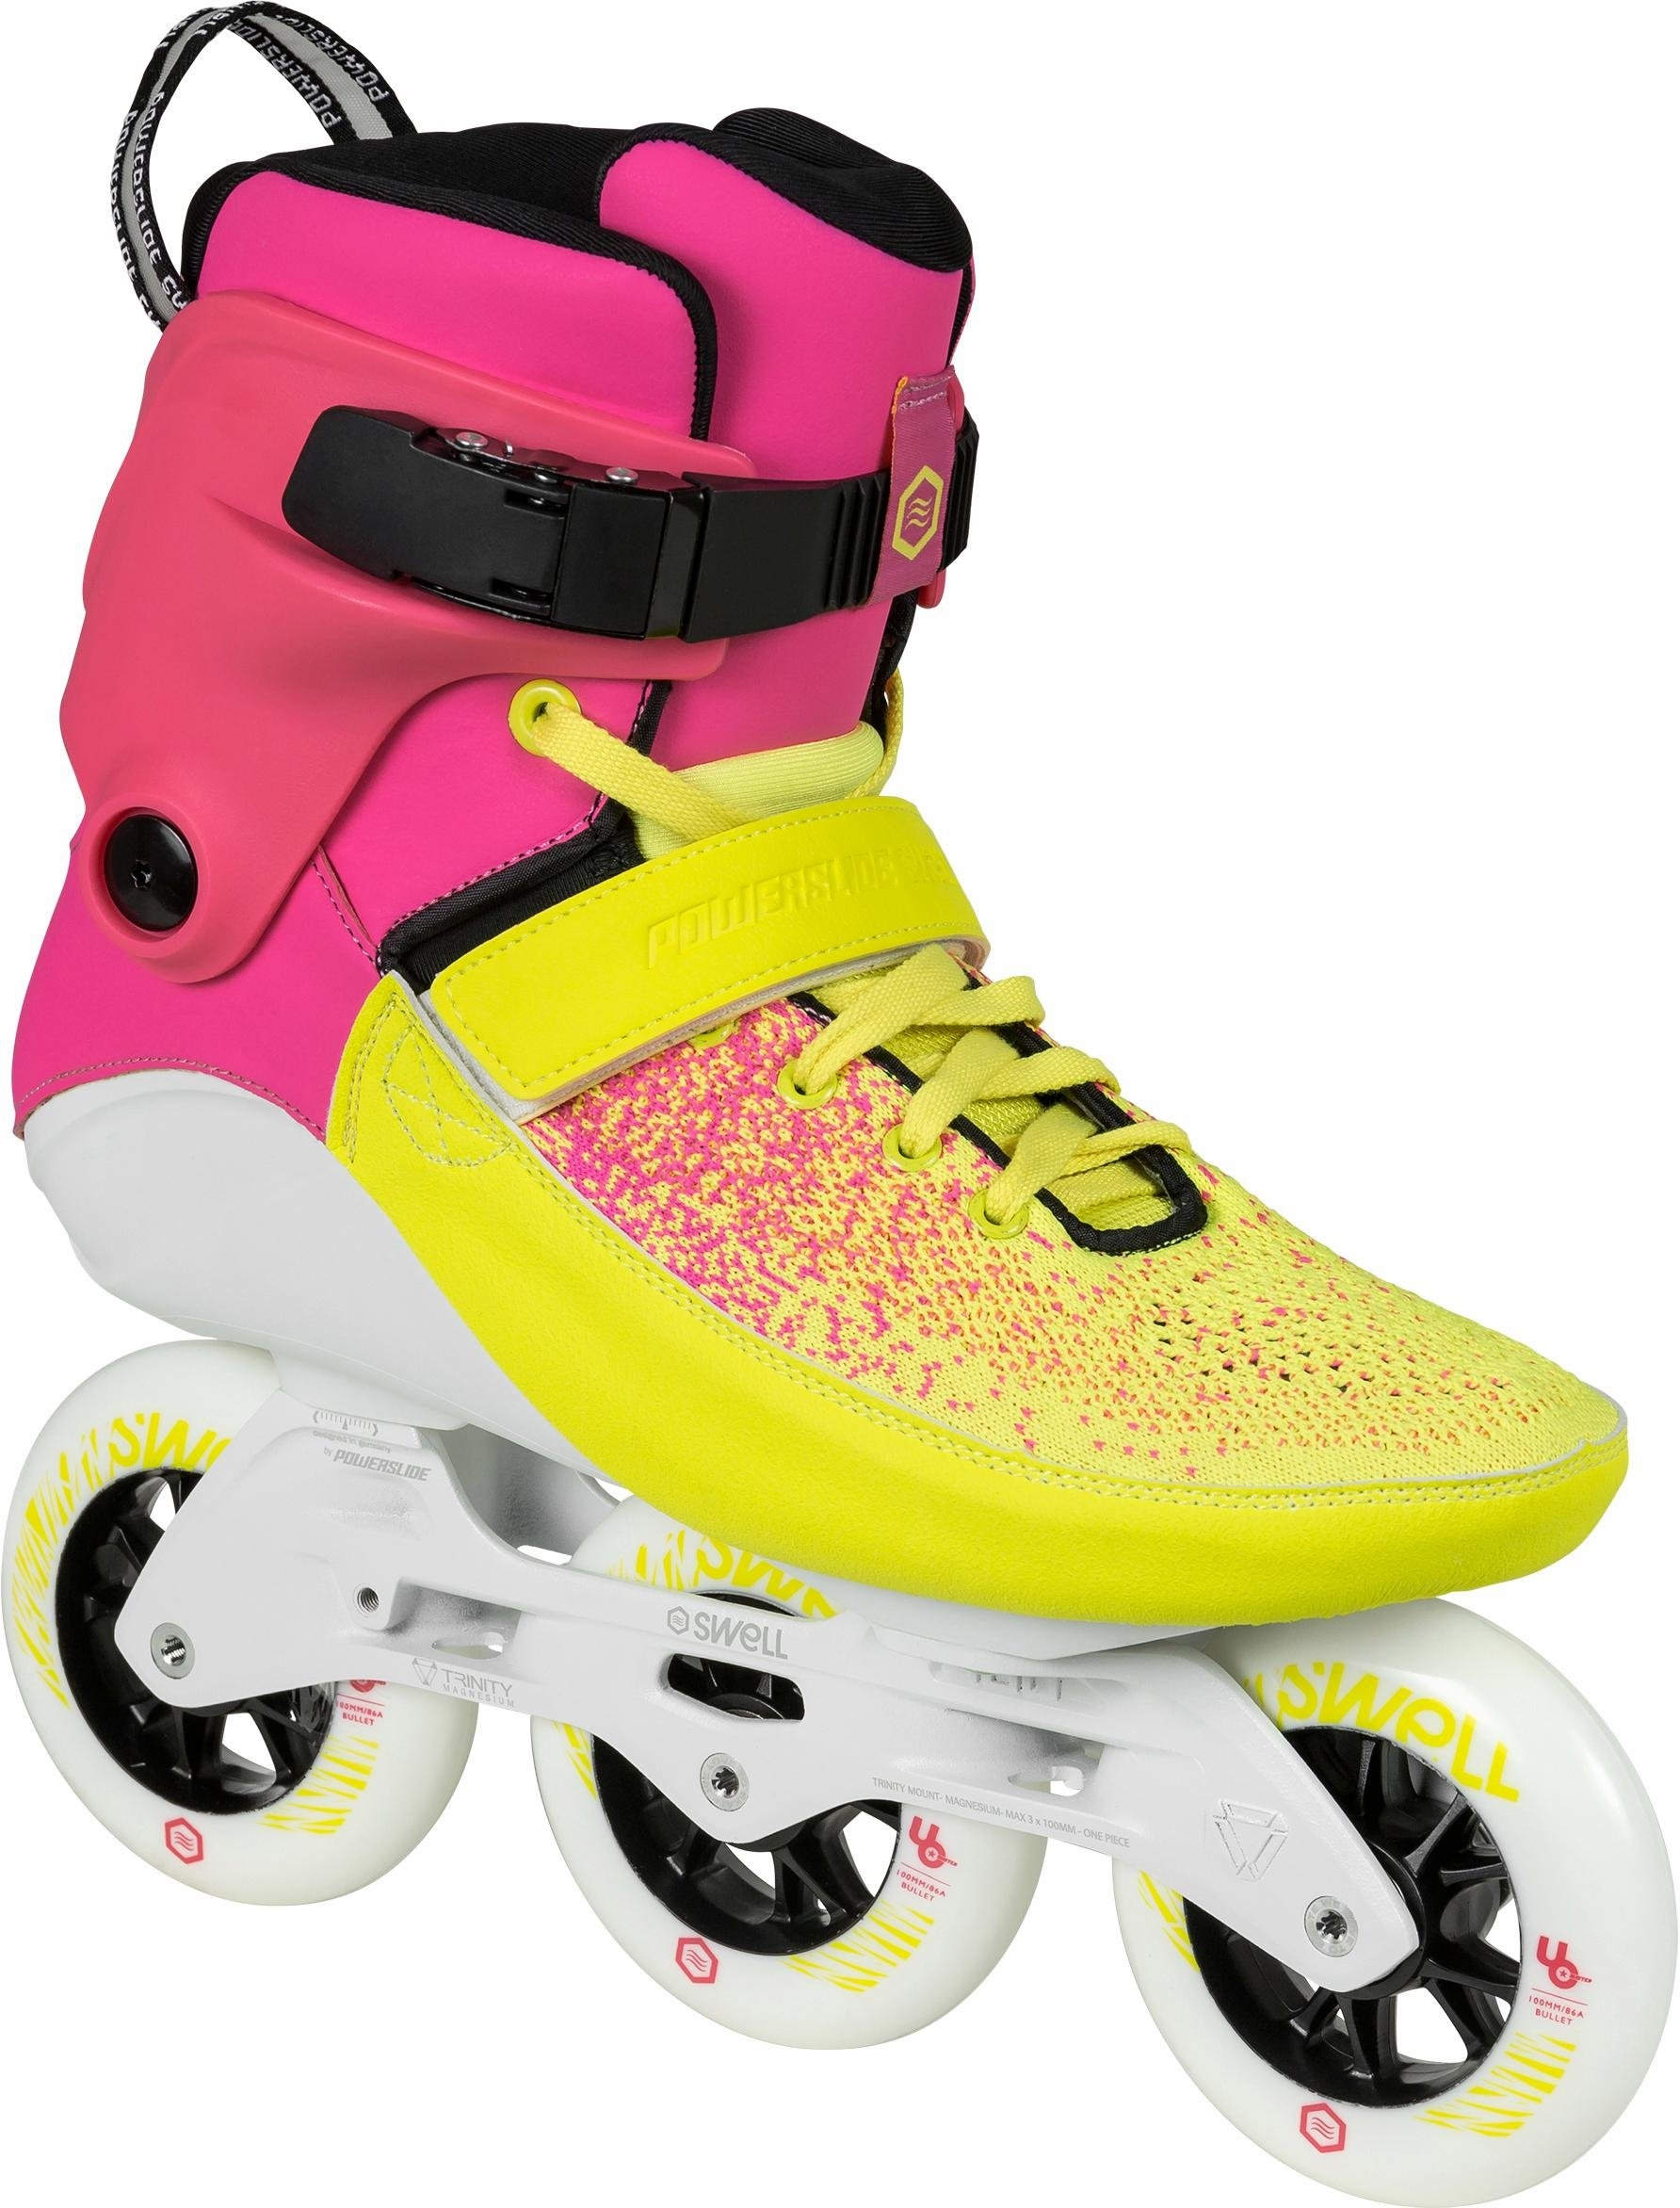 Powerslide inlineskates, »Swell Multicolor Flair 100« online kopen op otto.nl